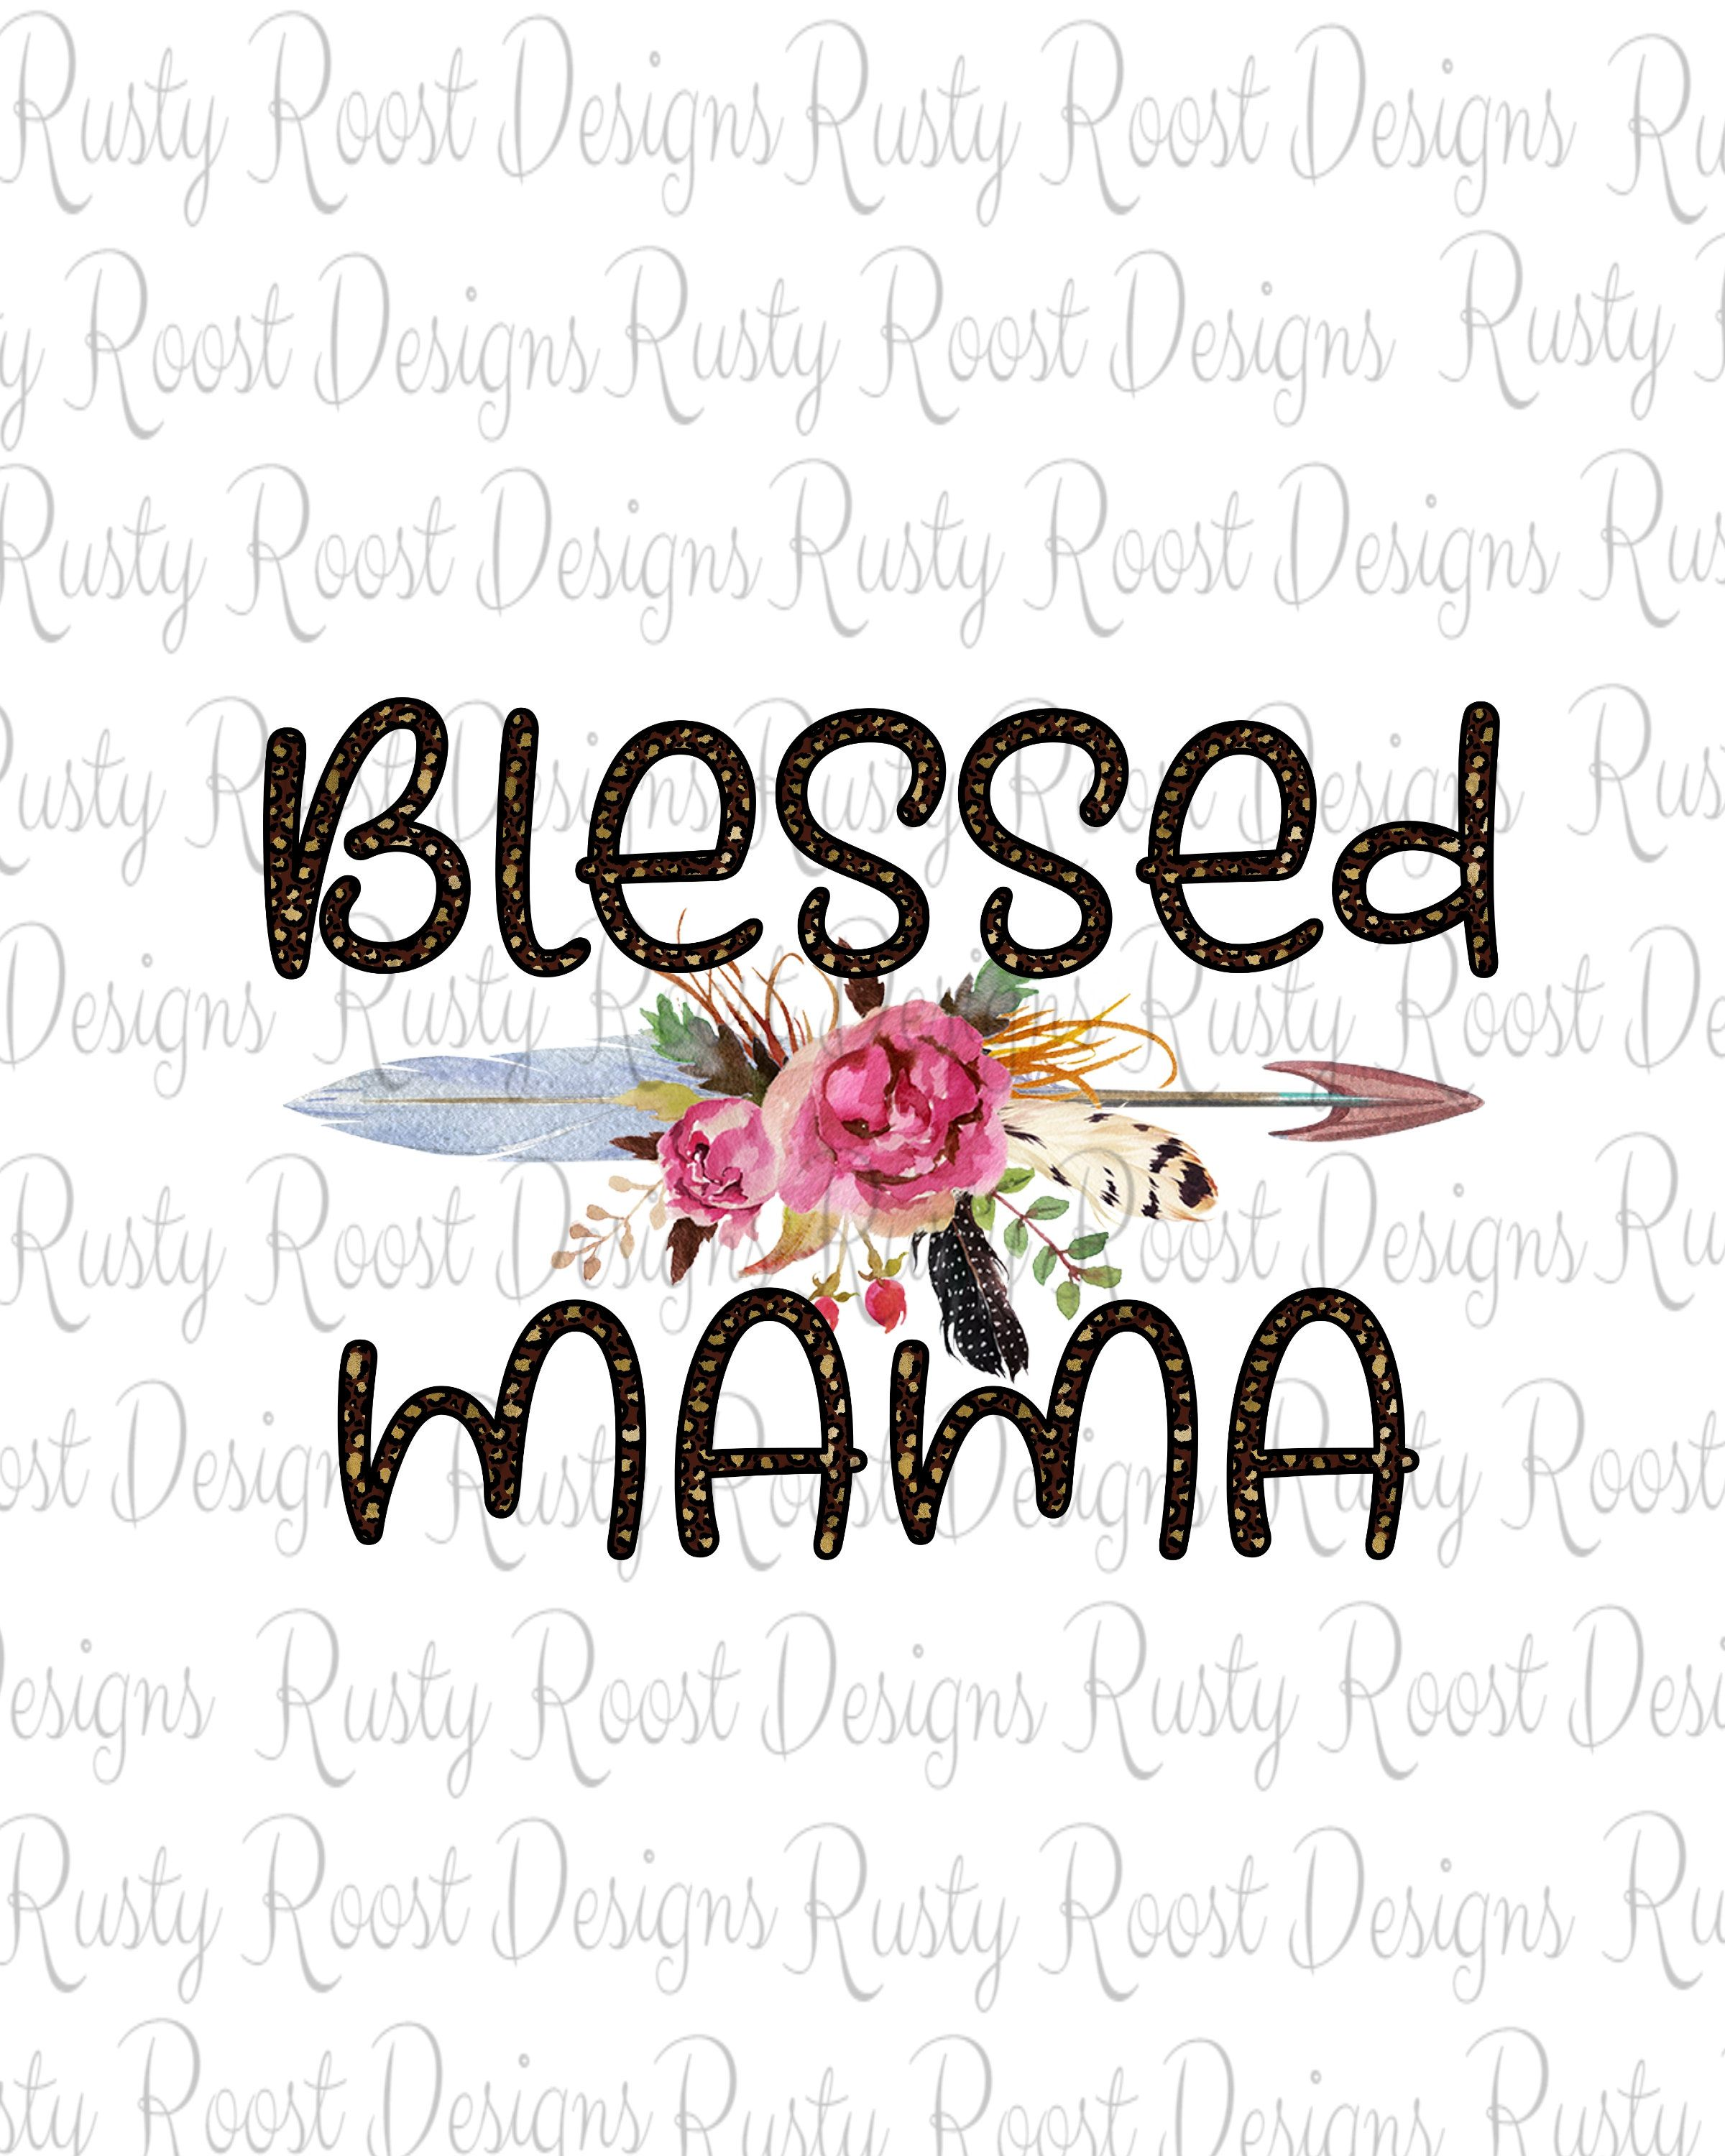 Blessed Mama Png Leopard And Floral Png Digital Download Mom Life Mama Design Mom Sublimation Design Sublimation Mother S Day Design Clipart In 2020 Floral Doodle Floral Drawing Floral Cards